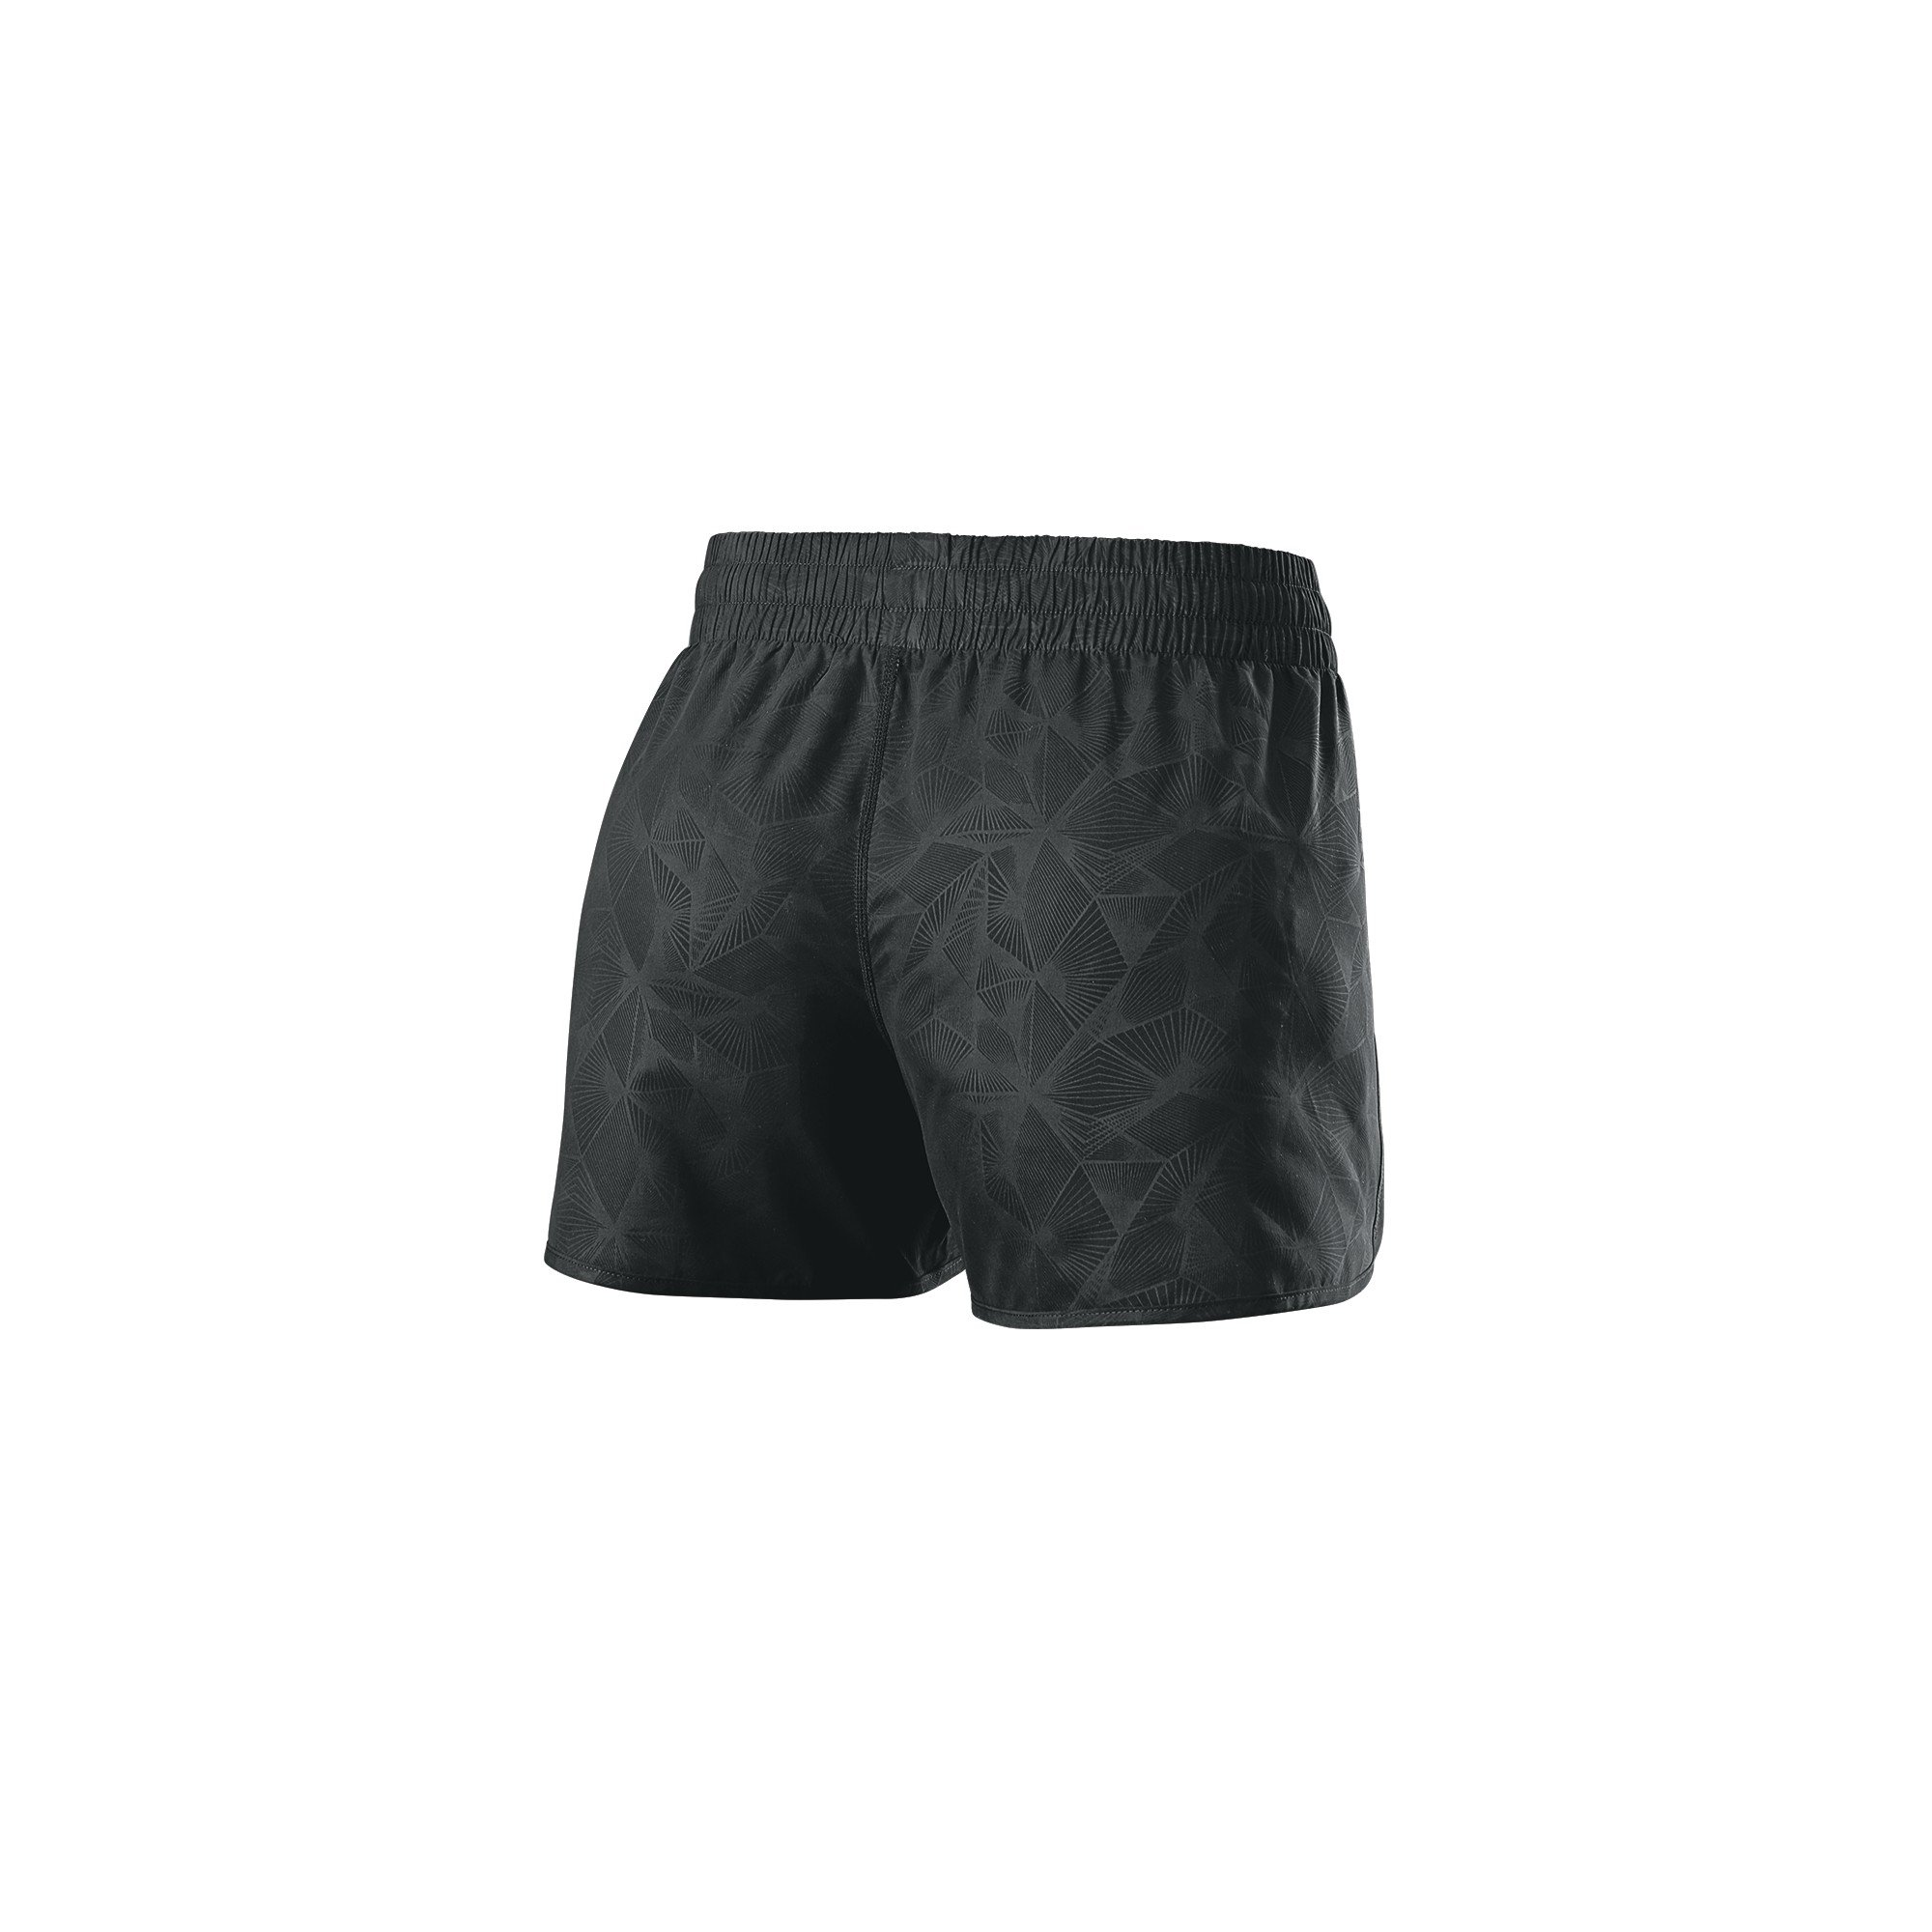 DeMarini Womens Training Shorts - Womens, Black, Small